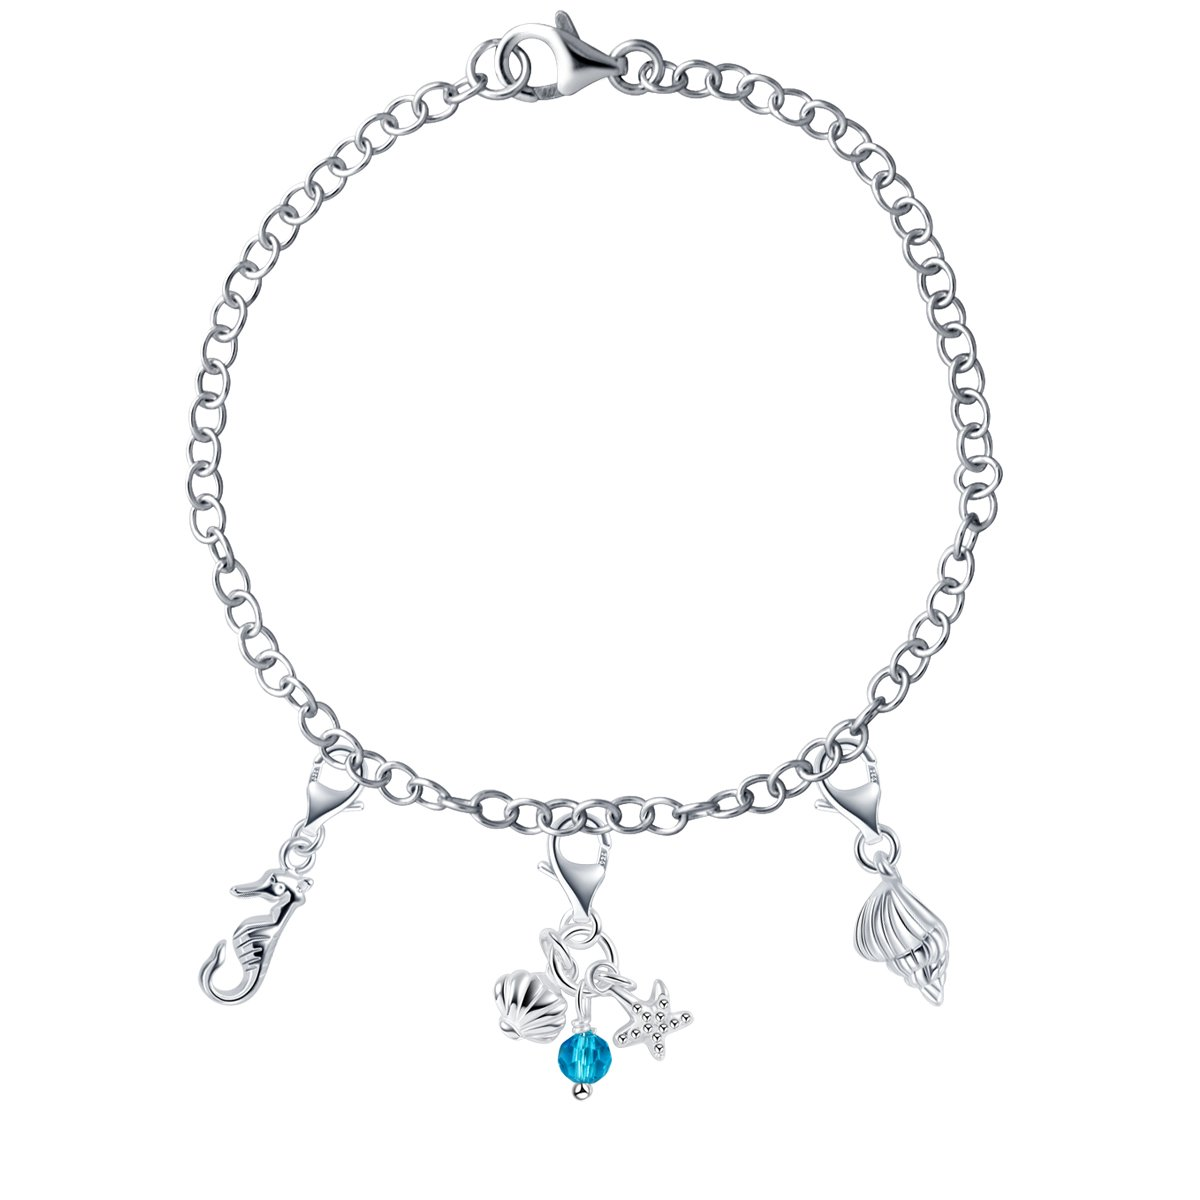 YAN /& LEI Sterling Silver Mix and Match Assorted Beach and Ocean Theme Charms Bracelet Set